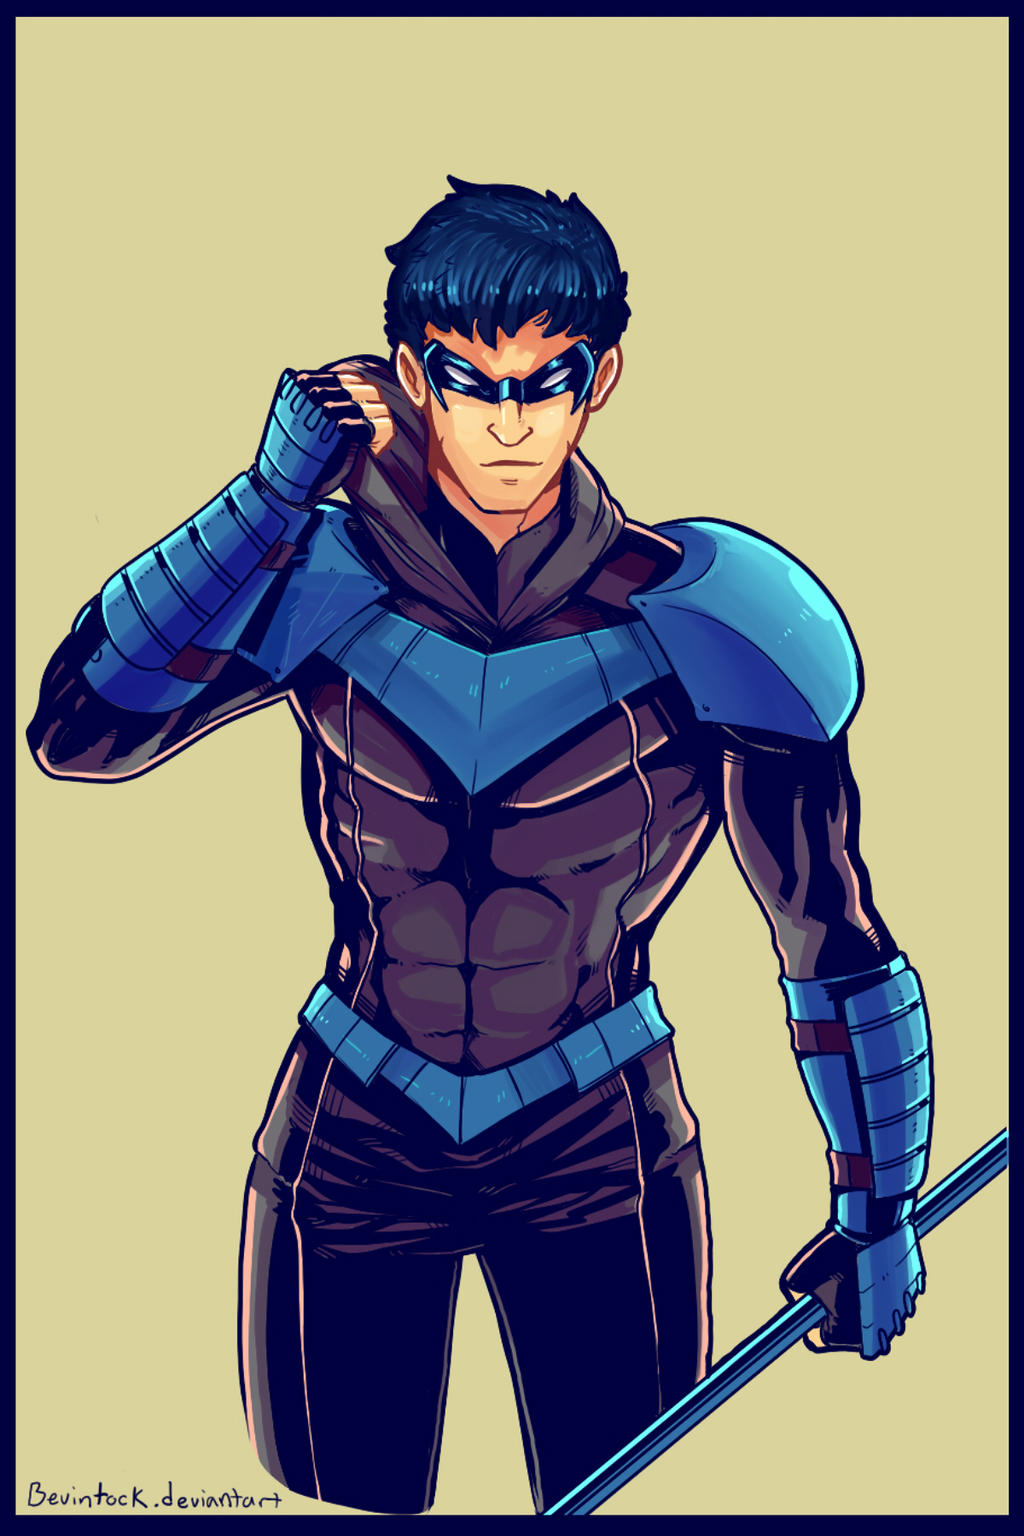 What we Reap Nightwing_costume_redesign_concept_by_bevintock-d7s27ns